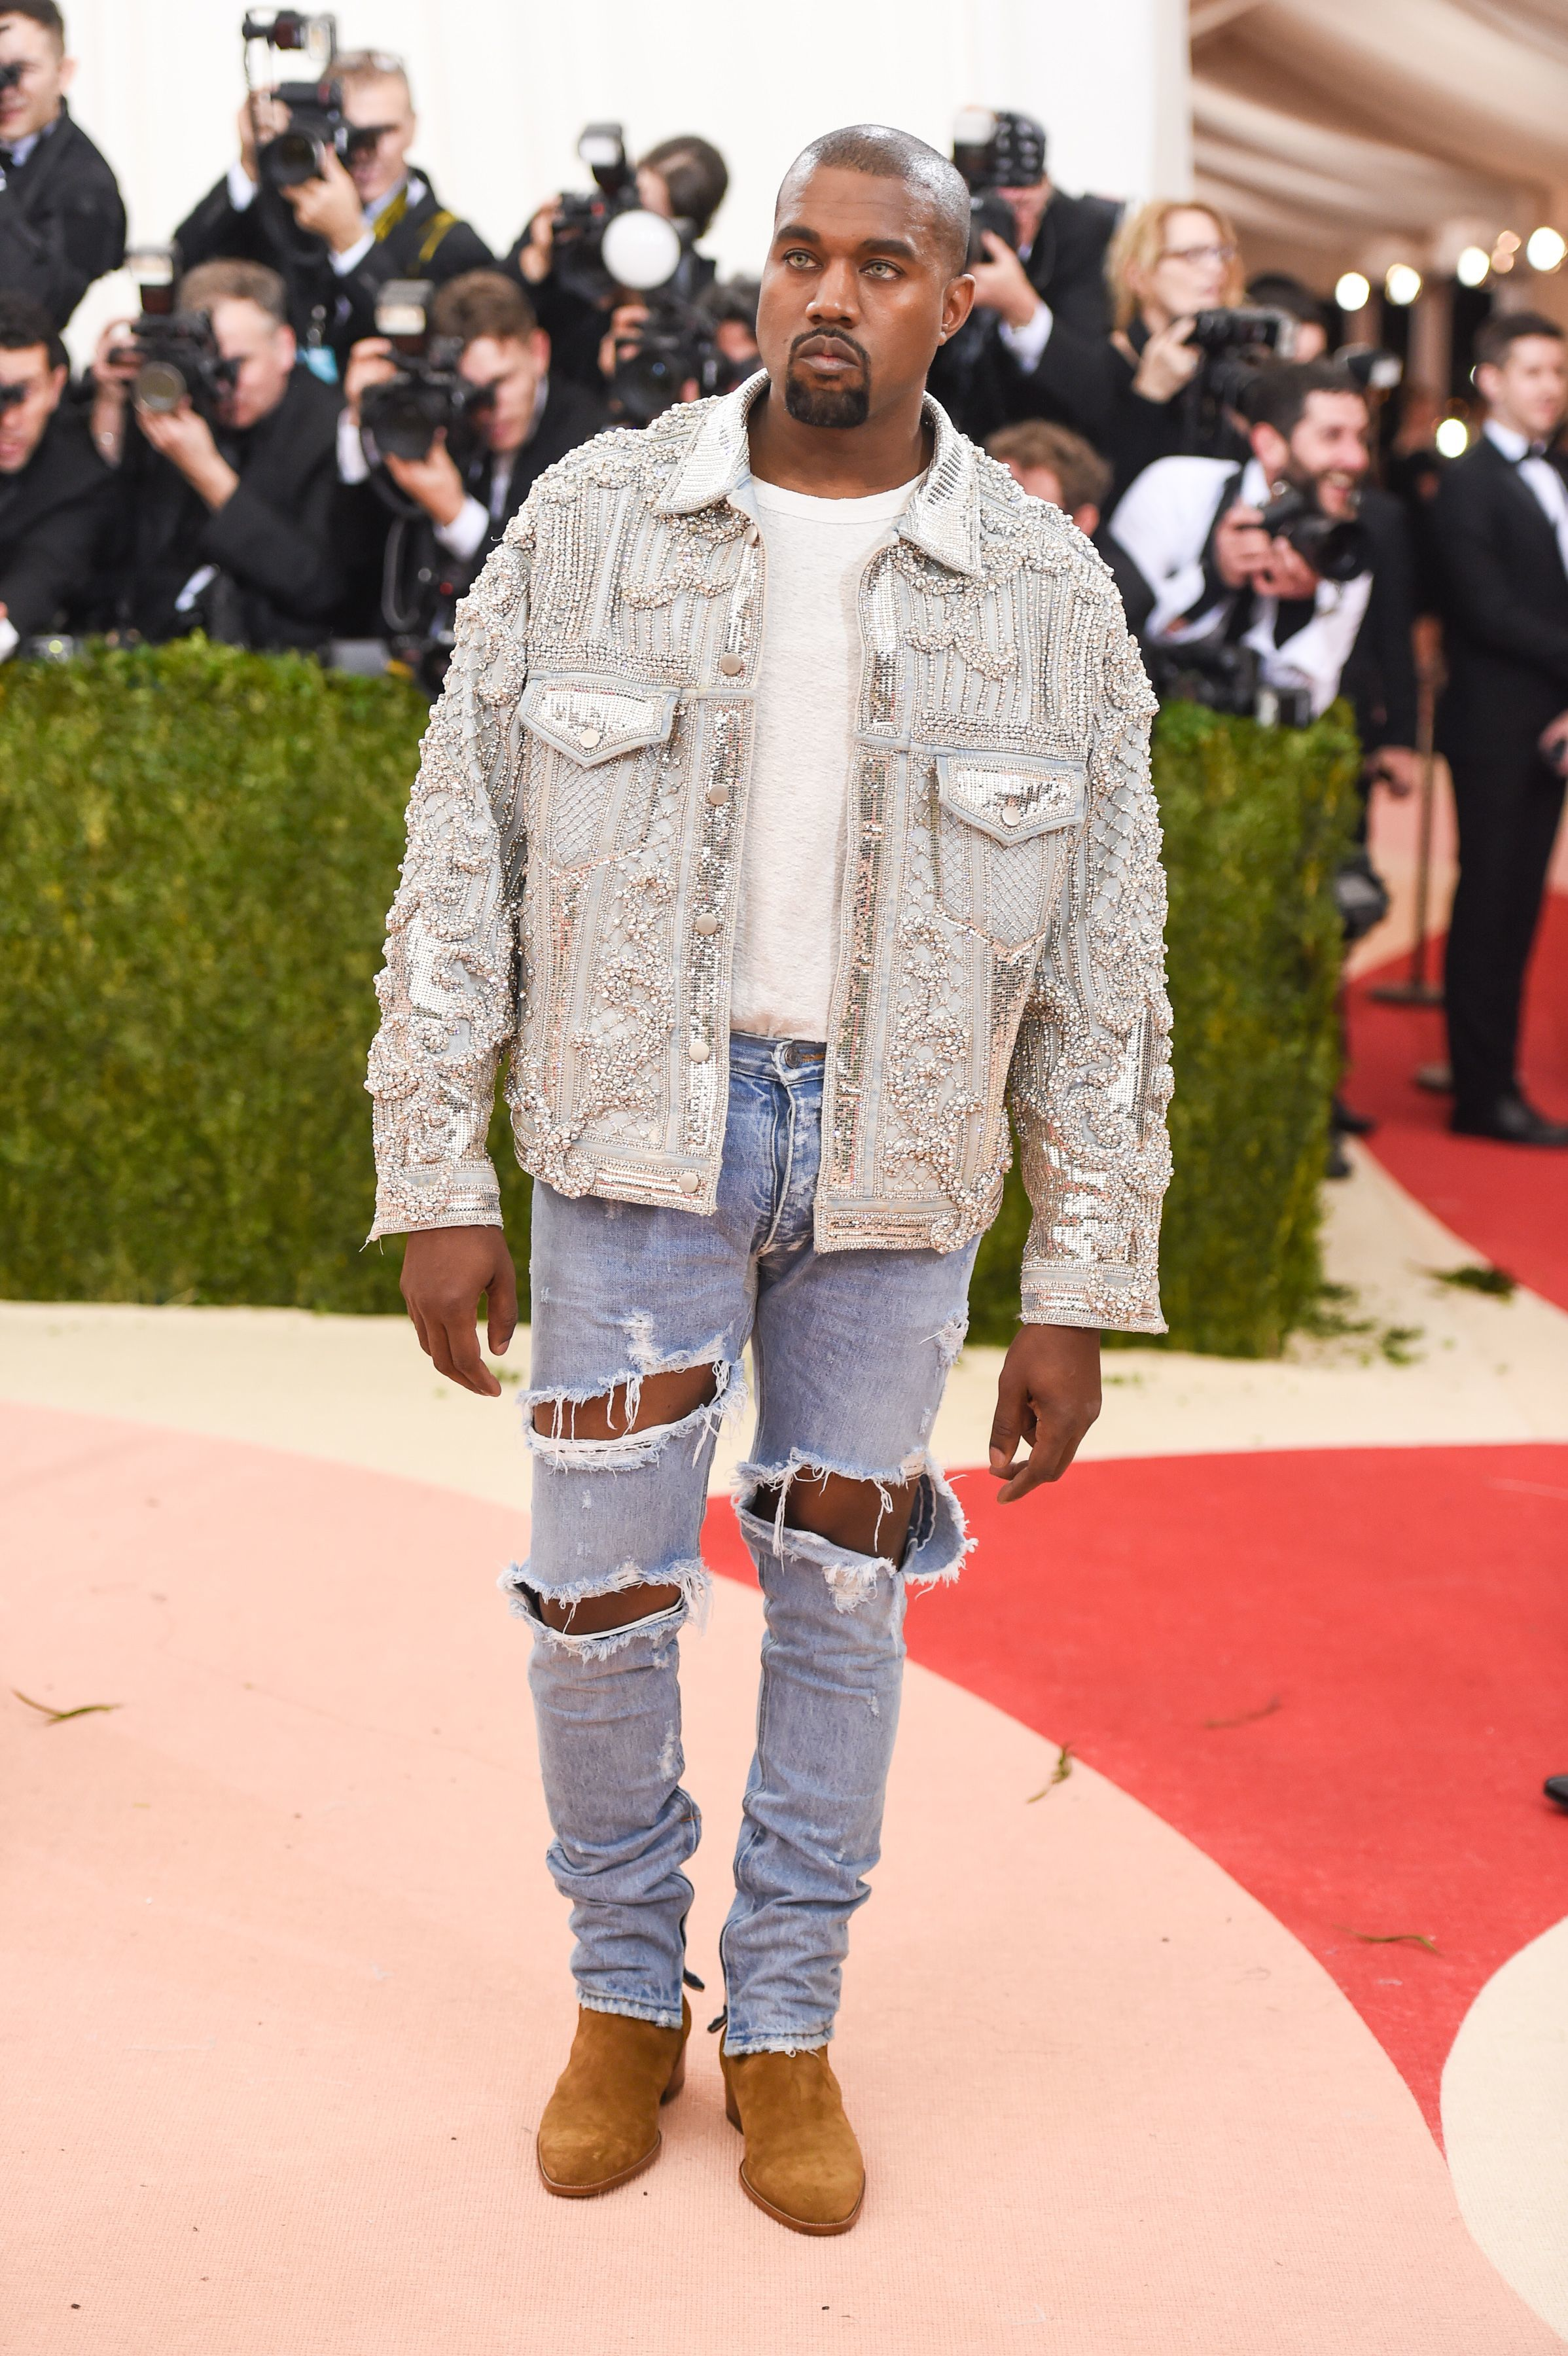 Kanye West dropped nearly $1M on wax figures for his 'Famous' video, plus more news